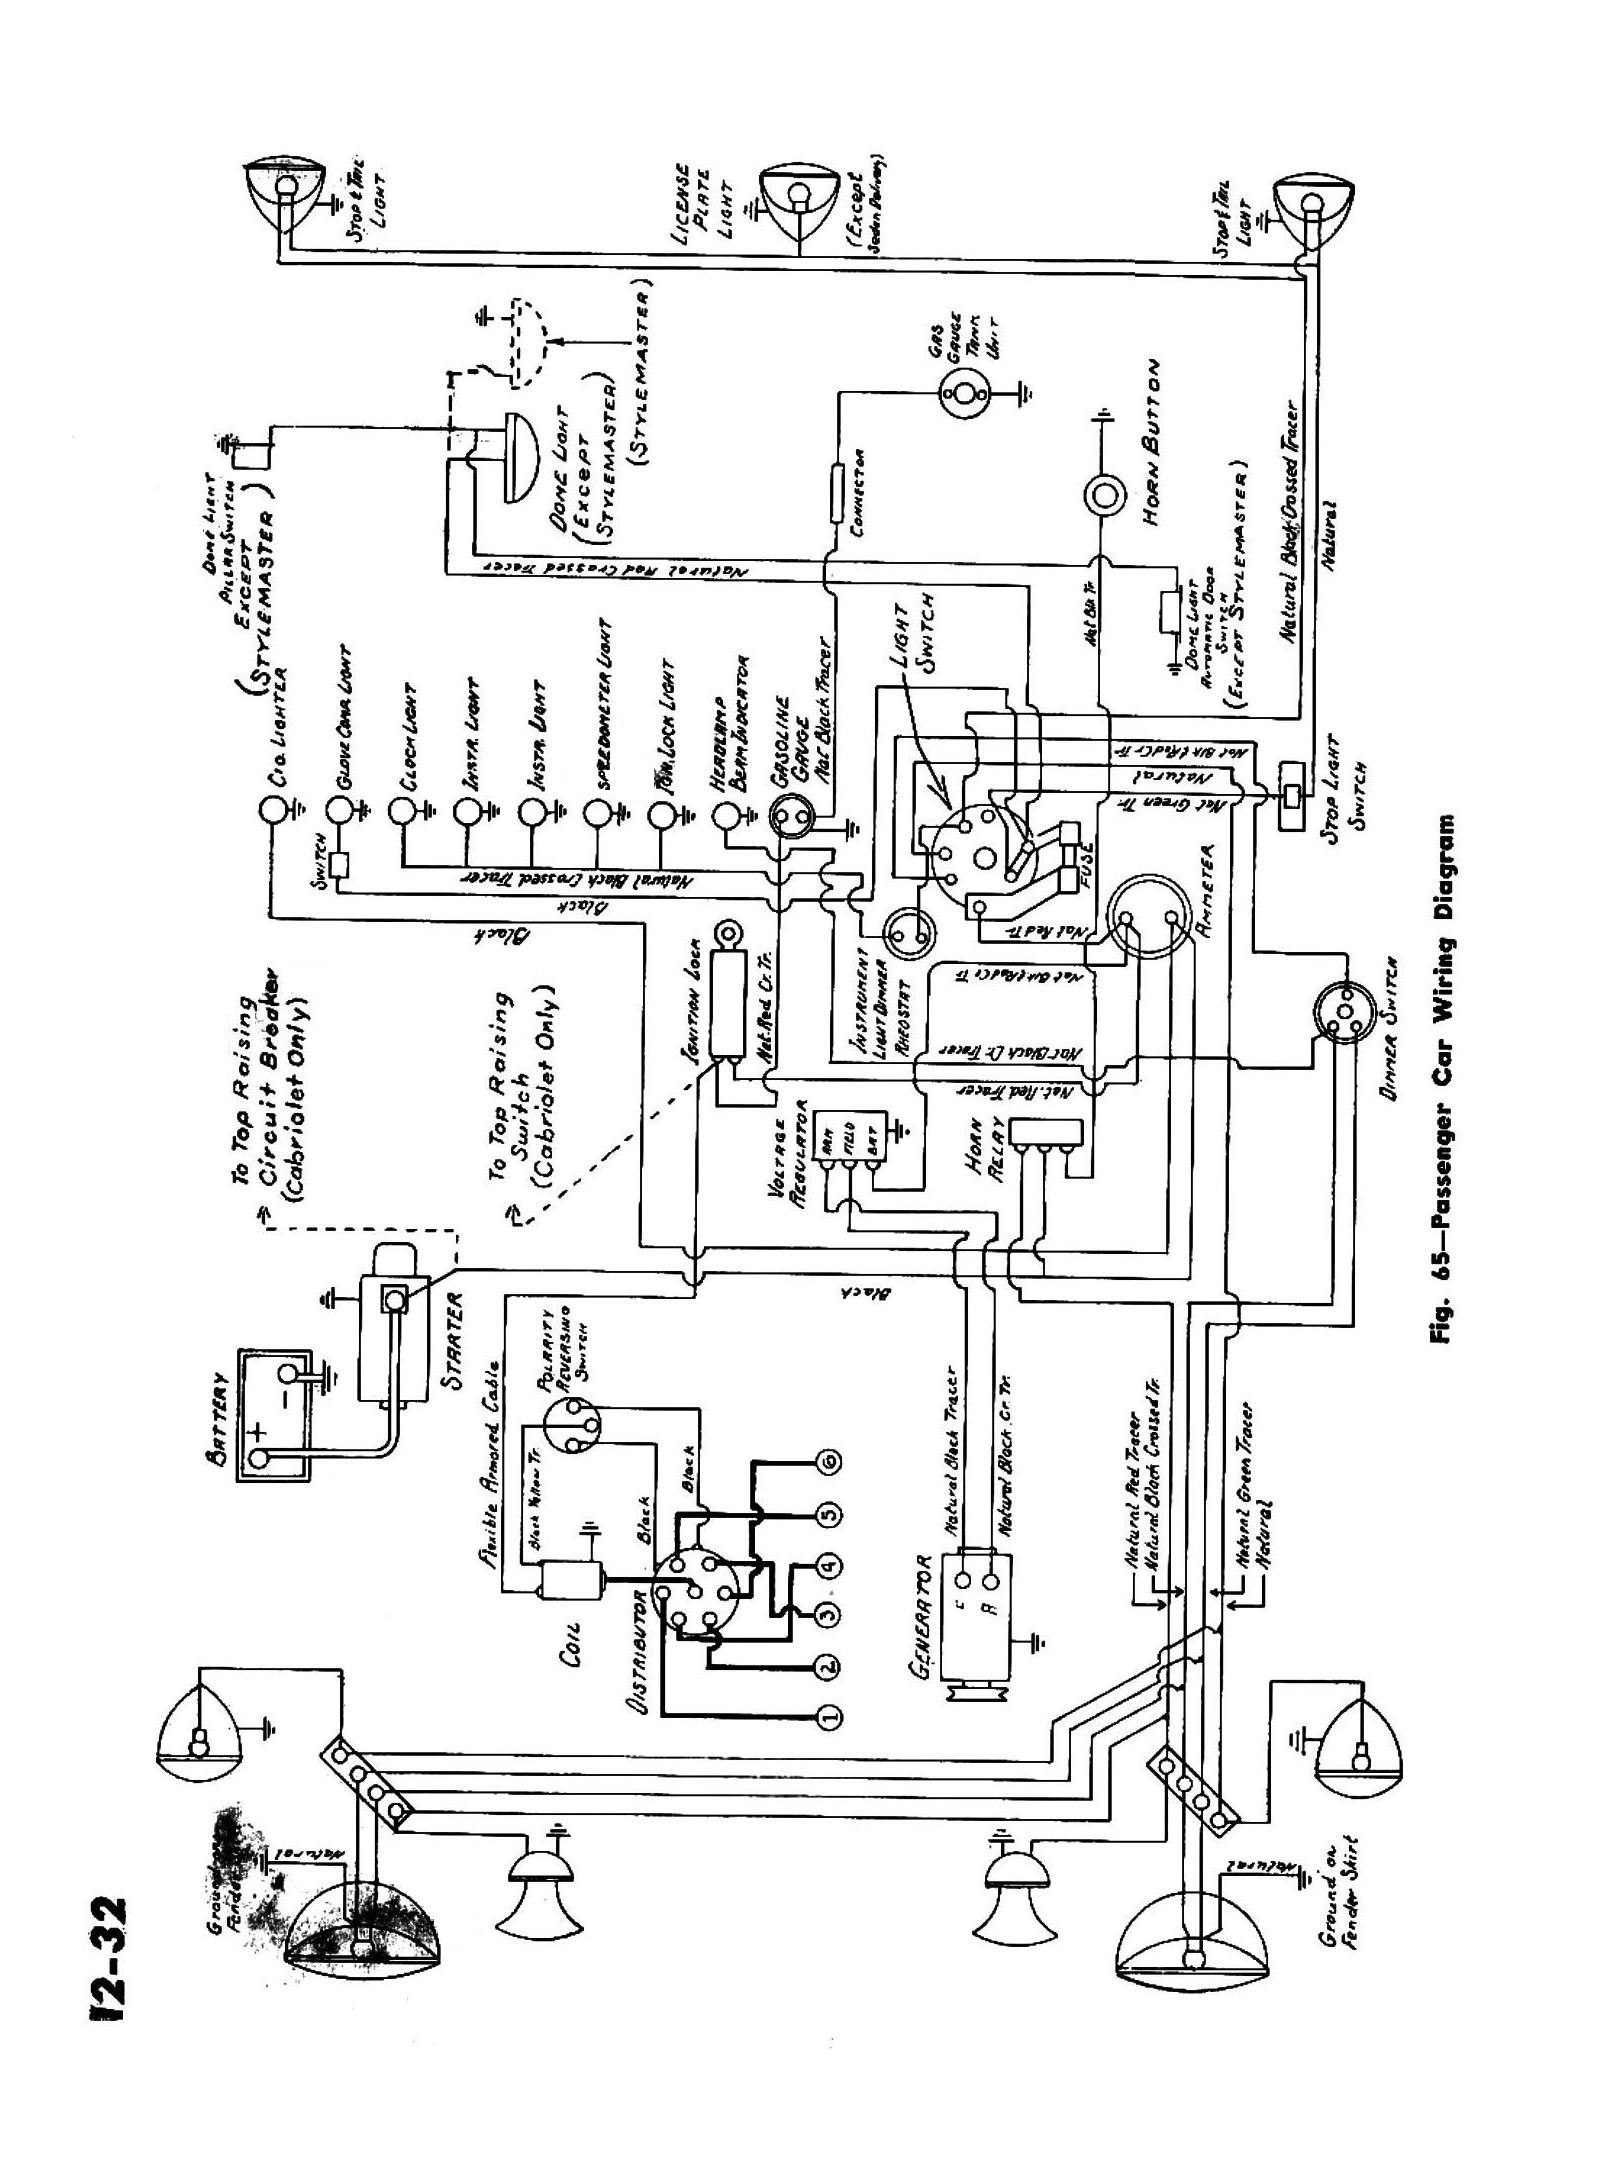 45car chevy wiring diagrams find wiring diagram for 87 ford f 150 at soozxer.org